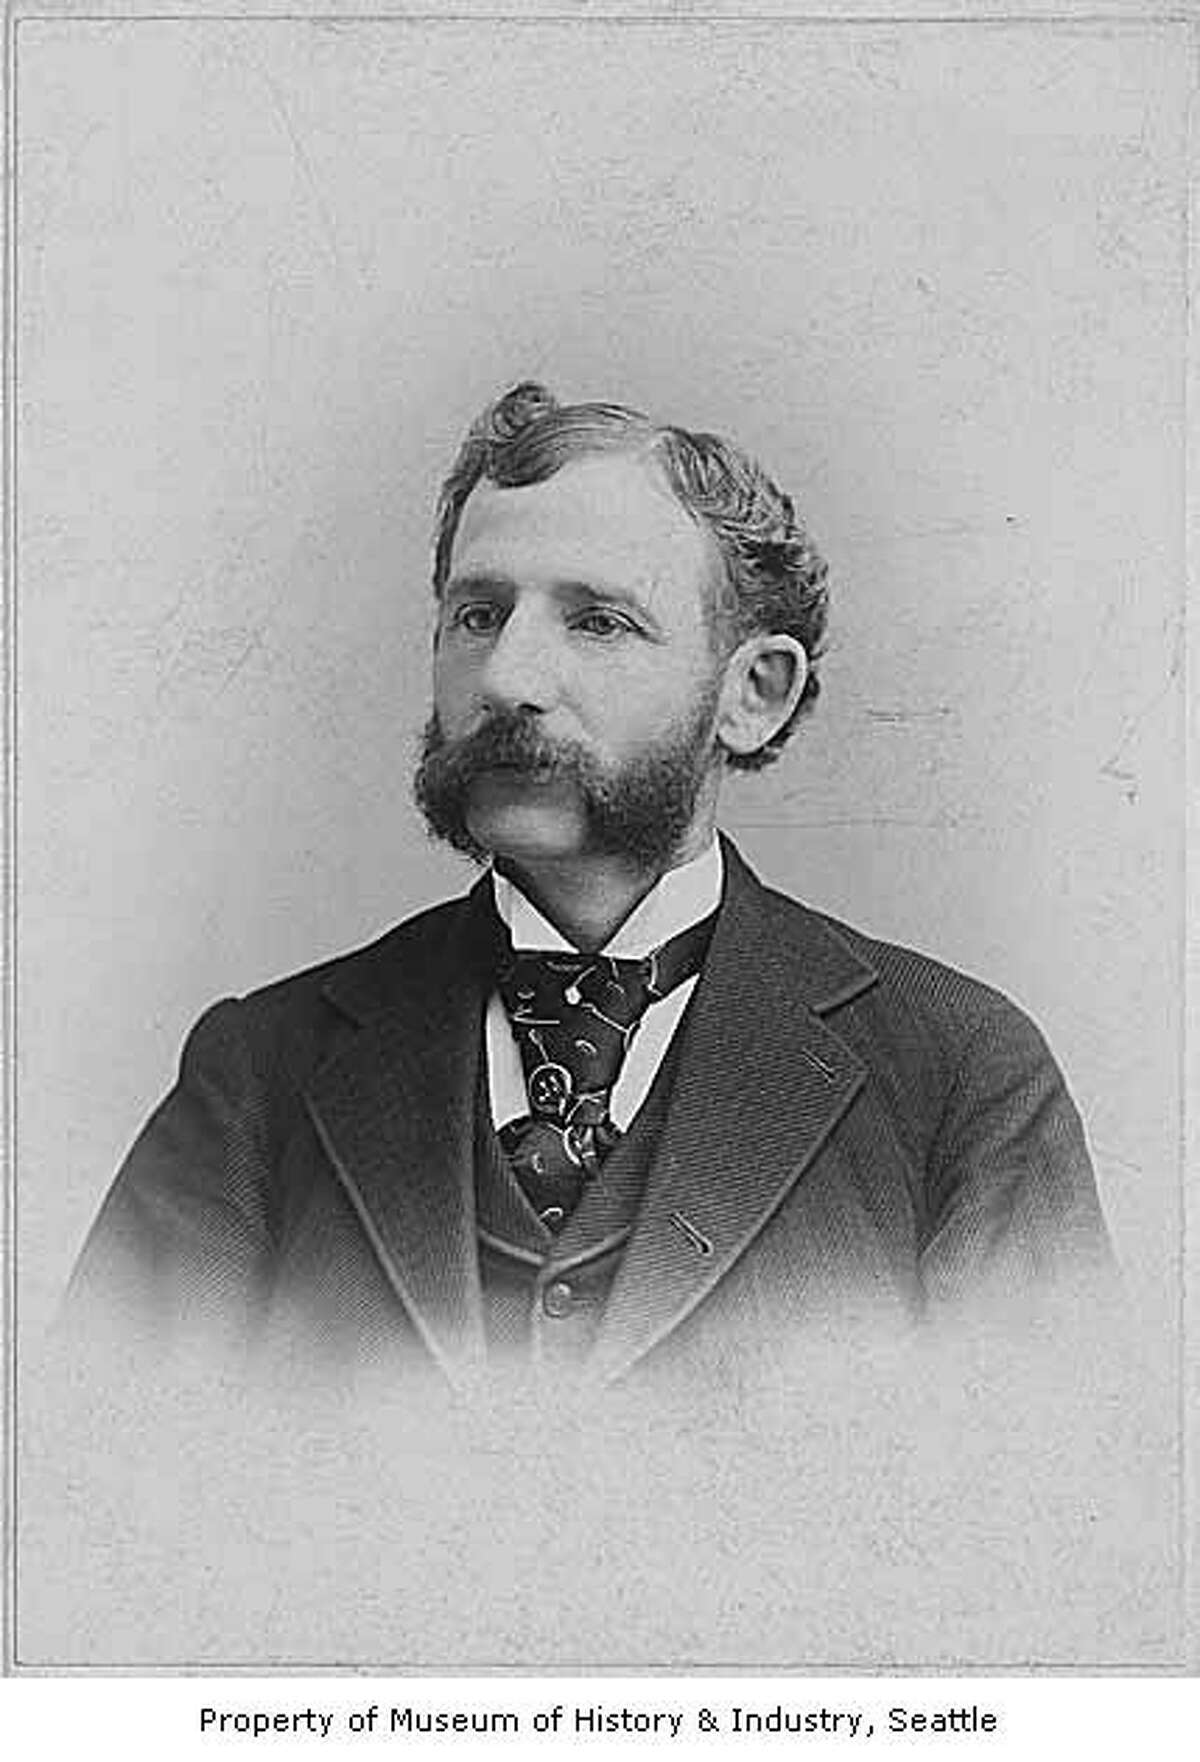 Rolland H. Denny, son of Arthur Denny, is shown here in roughly 1892. Rolland was only six weeks old at the time of the landing at Alki, having been born in Oregon in September, according to historylink.org. Photo courtesy MOHAI, Seattle Historical Society Collection, image number shs2188.